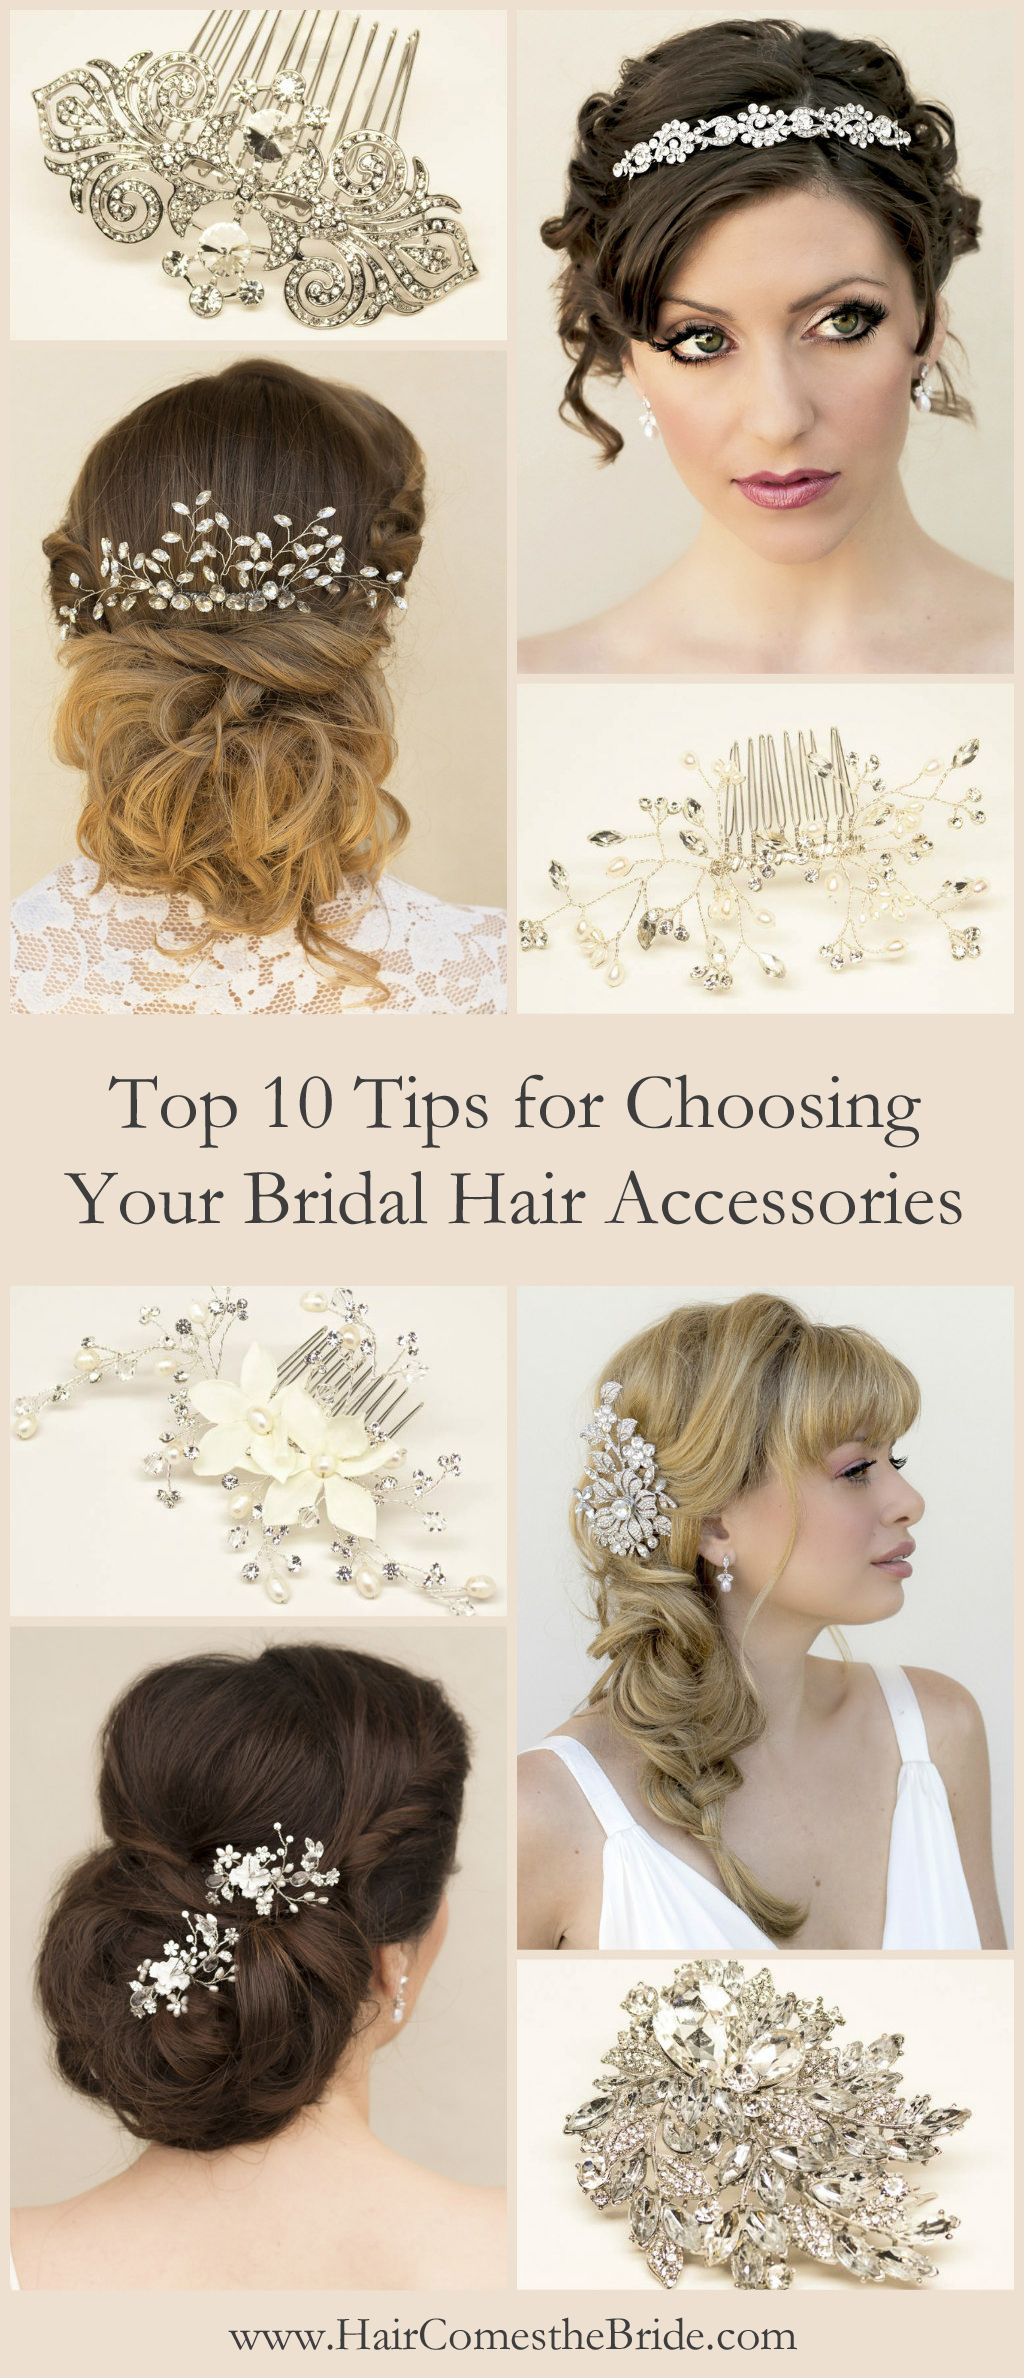 top 10 tips for choosing your bridal hair accessories | in